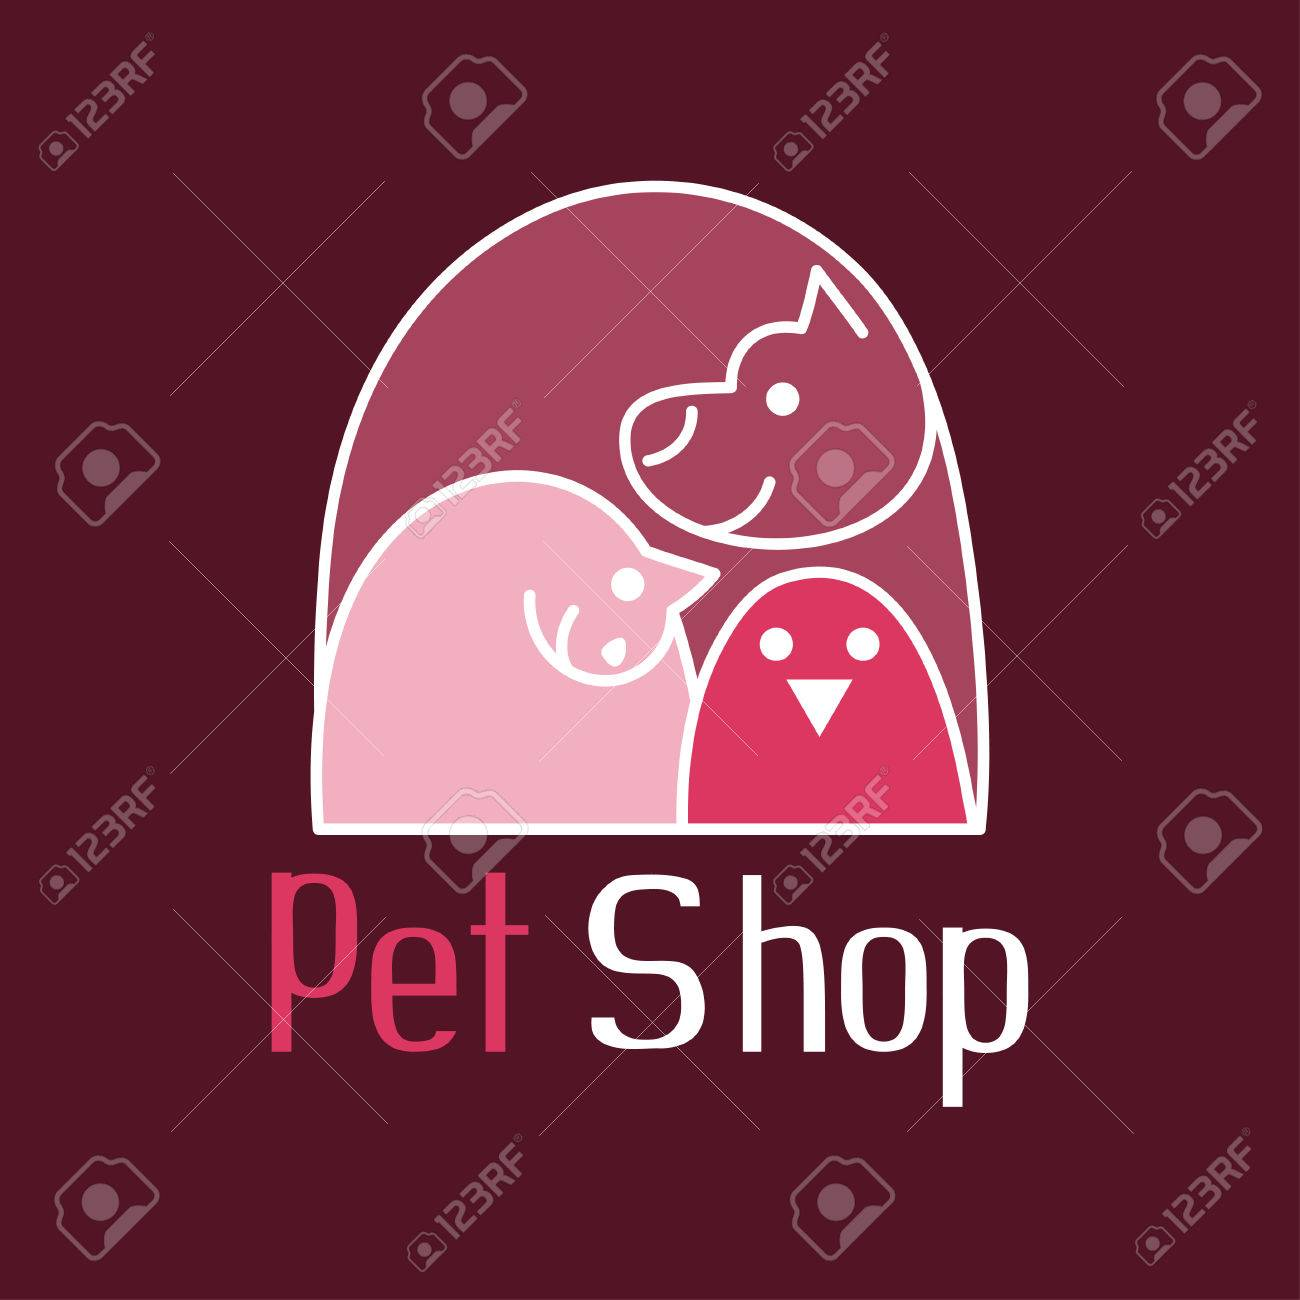 Cat, dog and bird of tender embrace, animals are the best friends, sign for pet shop logo, vector illustration - 43396902